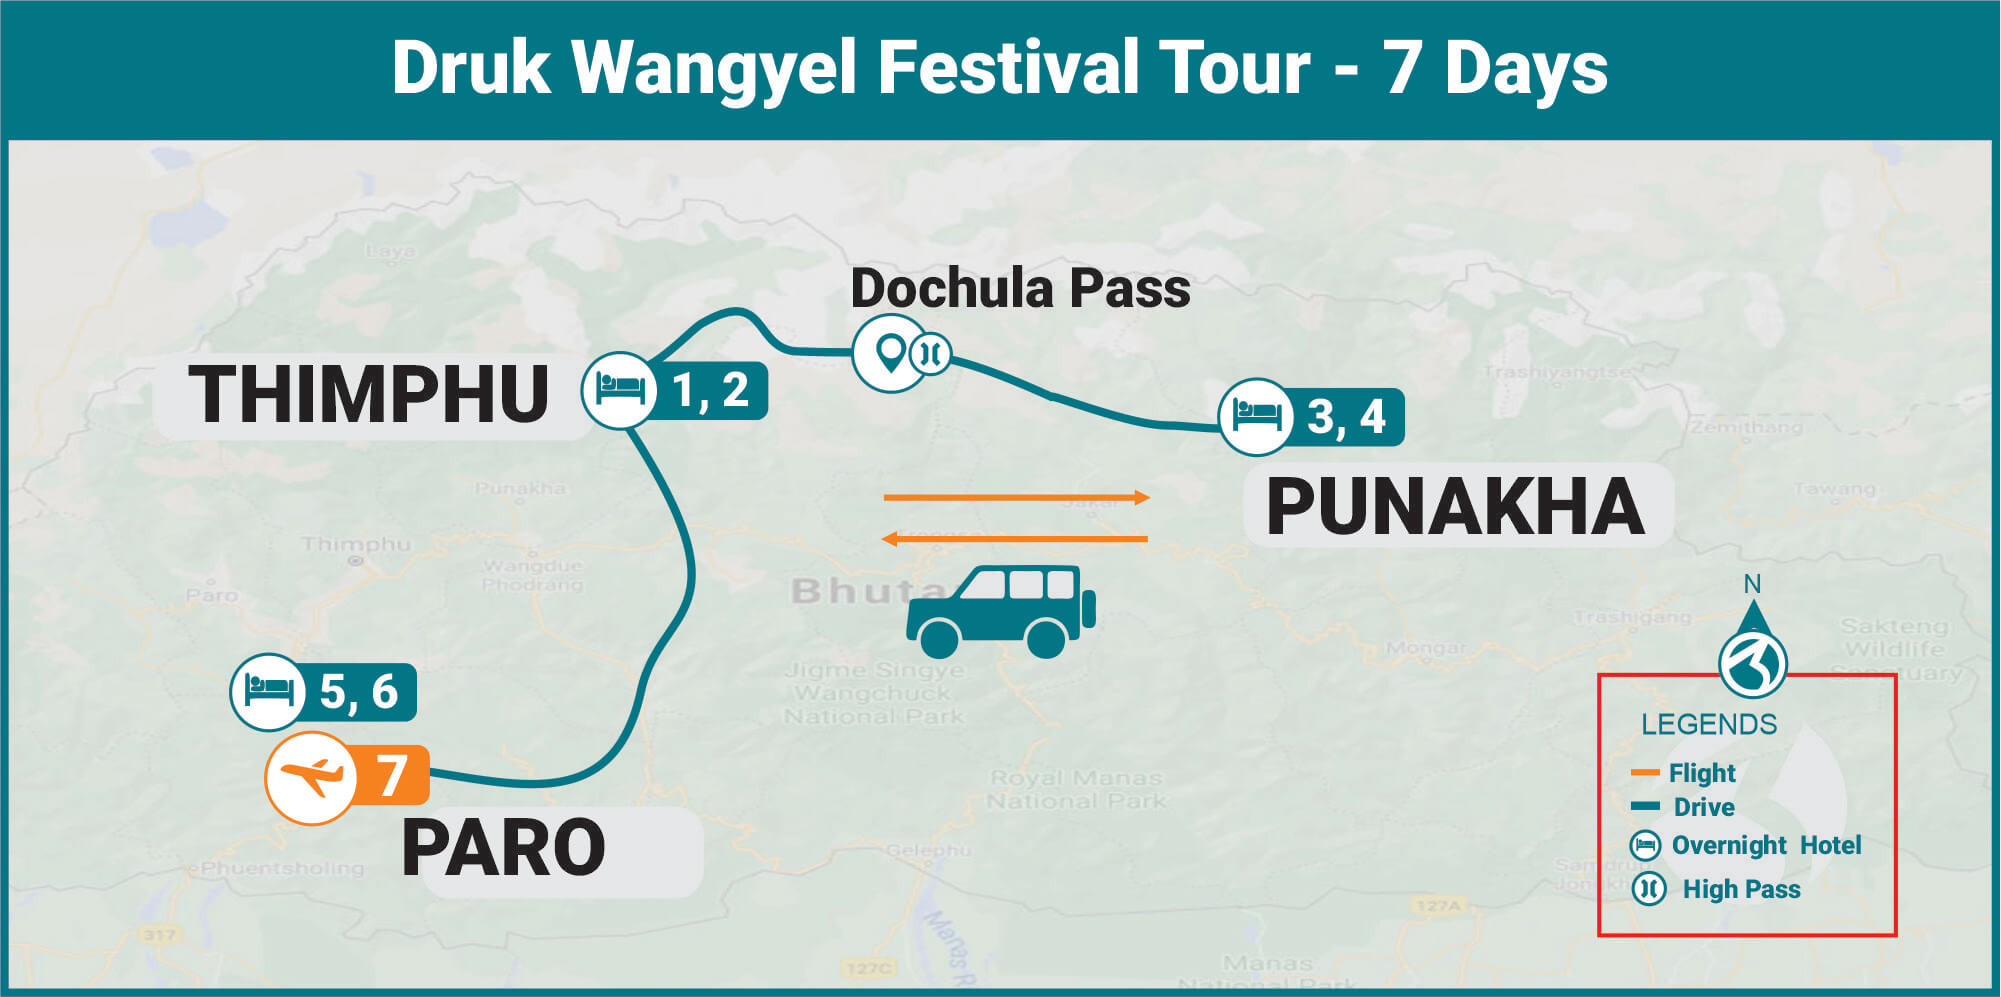 Druk Wangyel Festival Tour Map